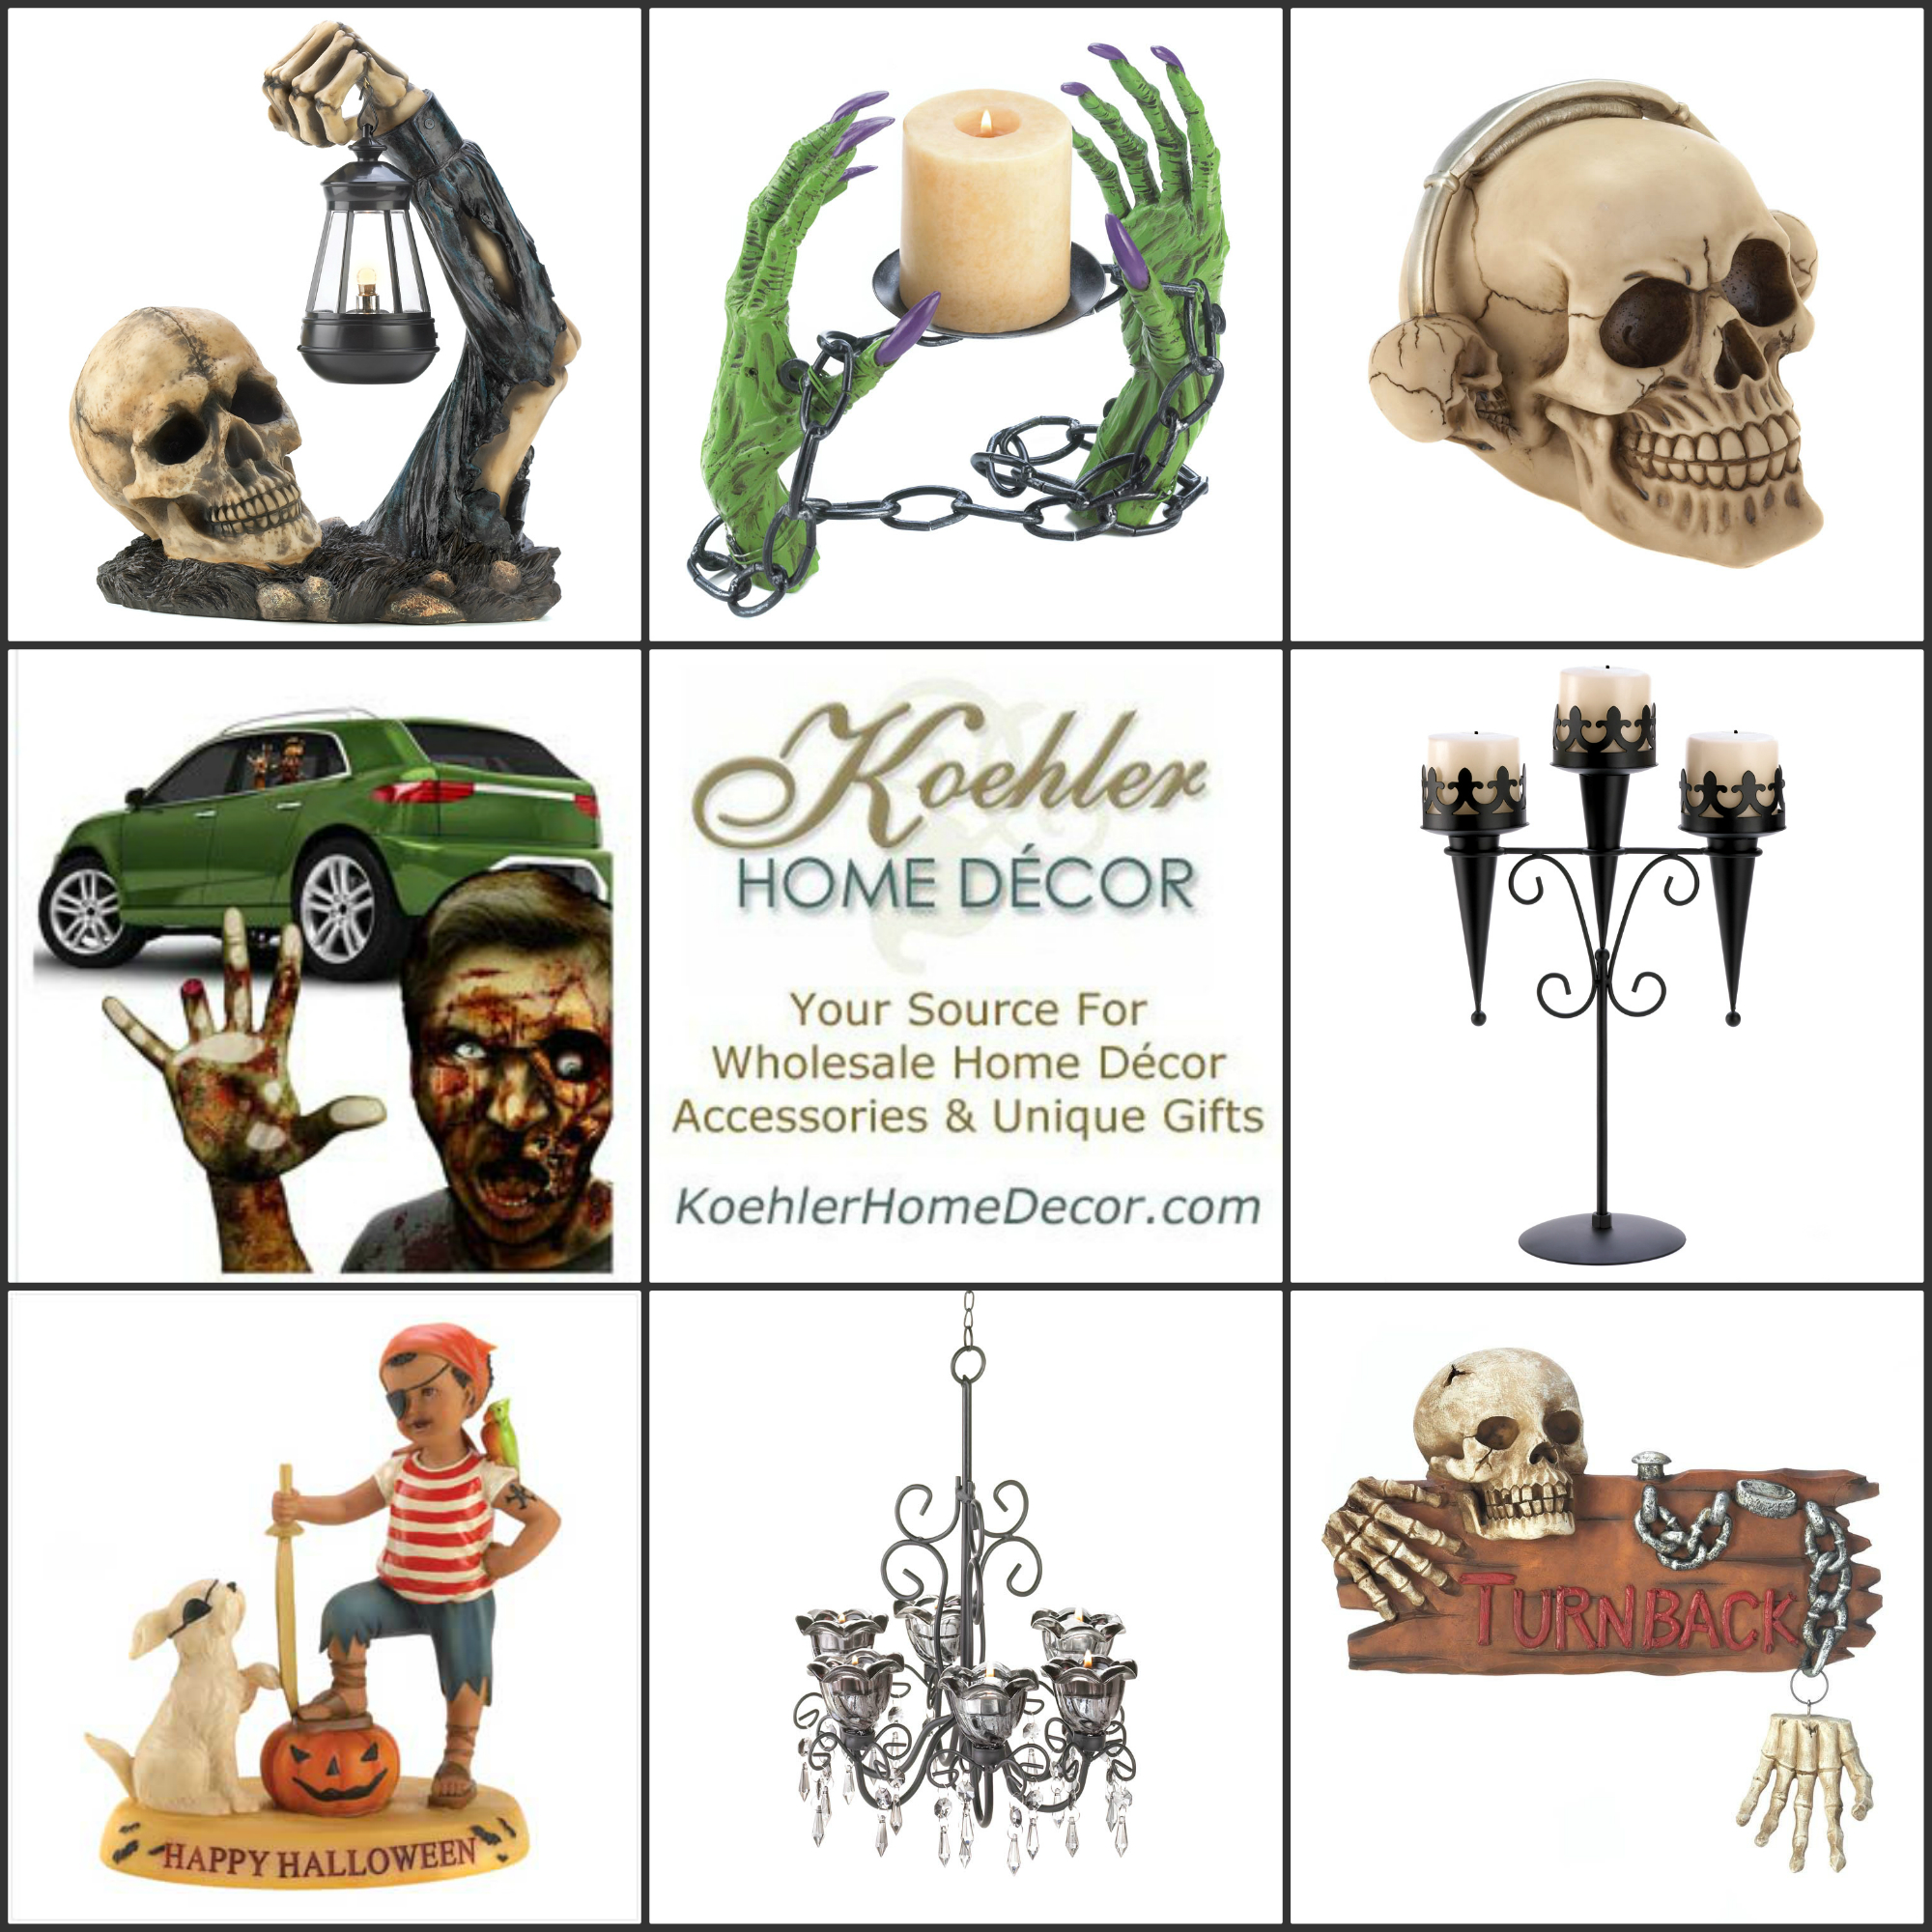 home decorating ideas archives · koehler home decor blogkoehler